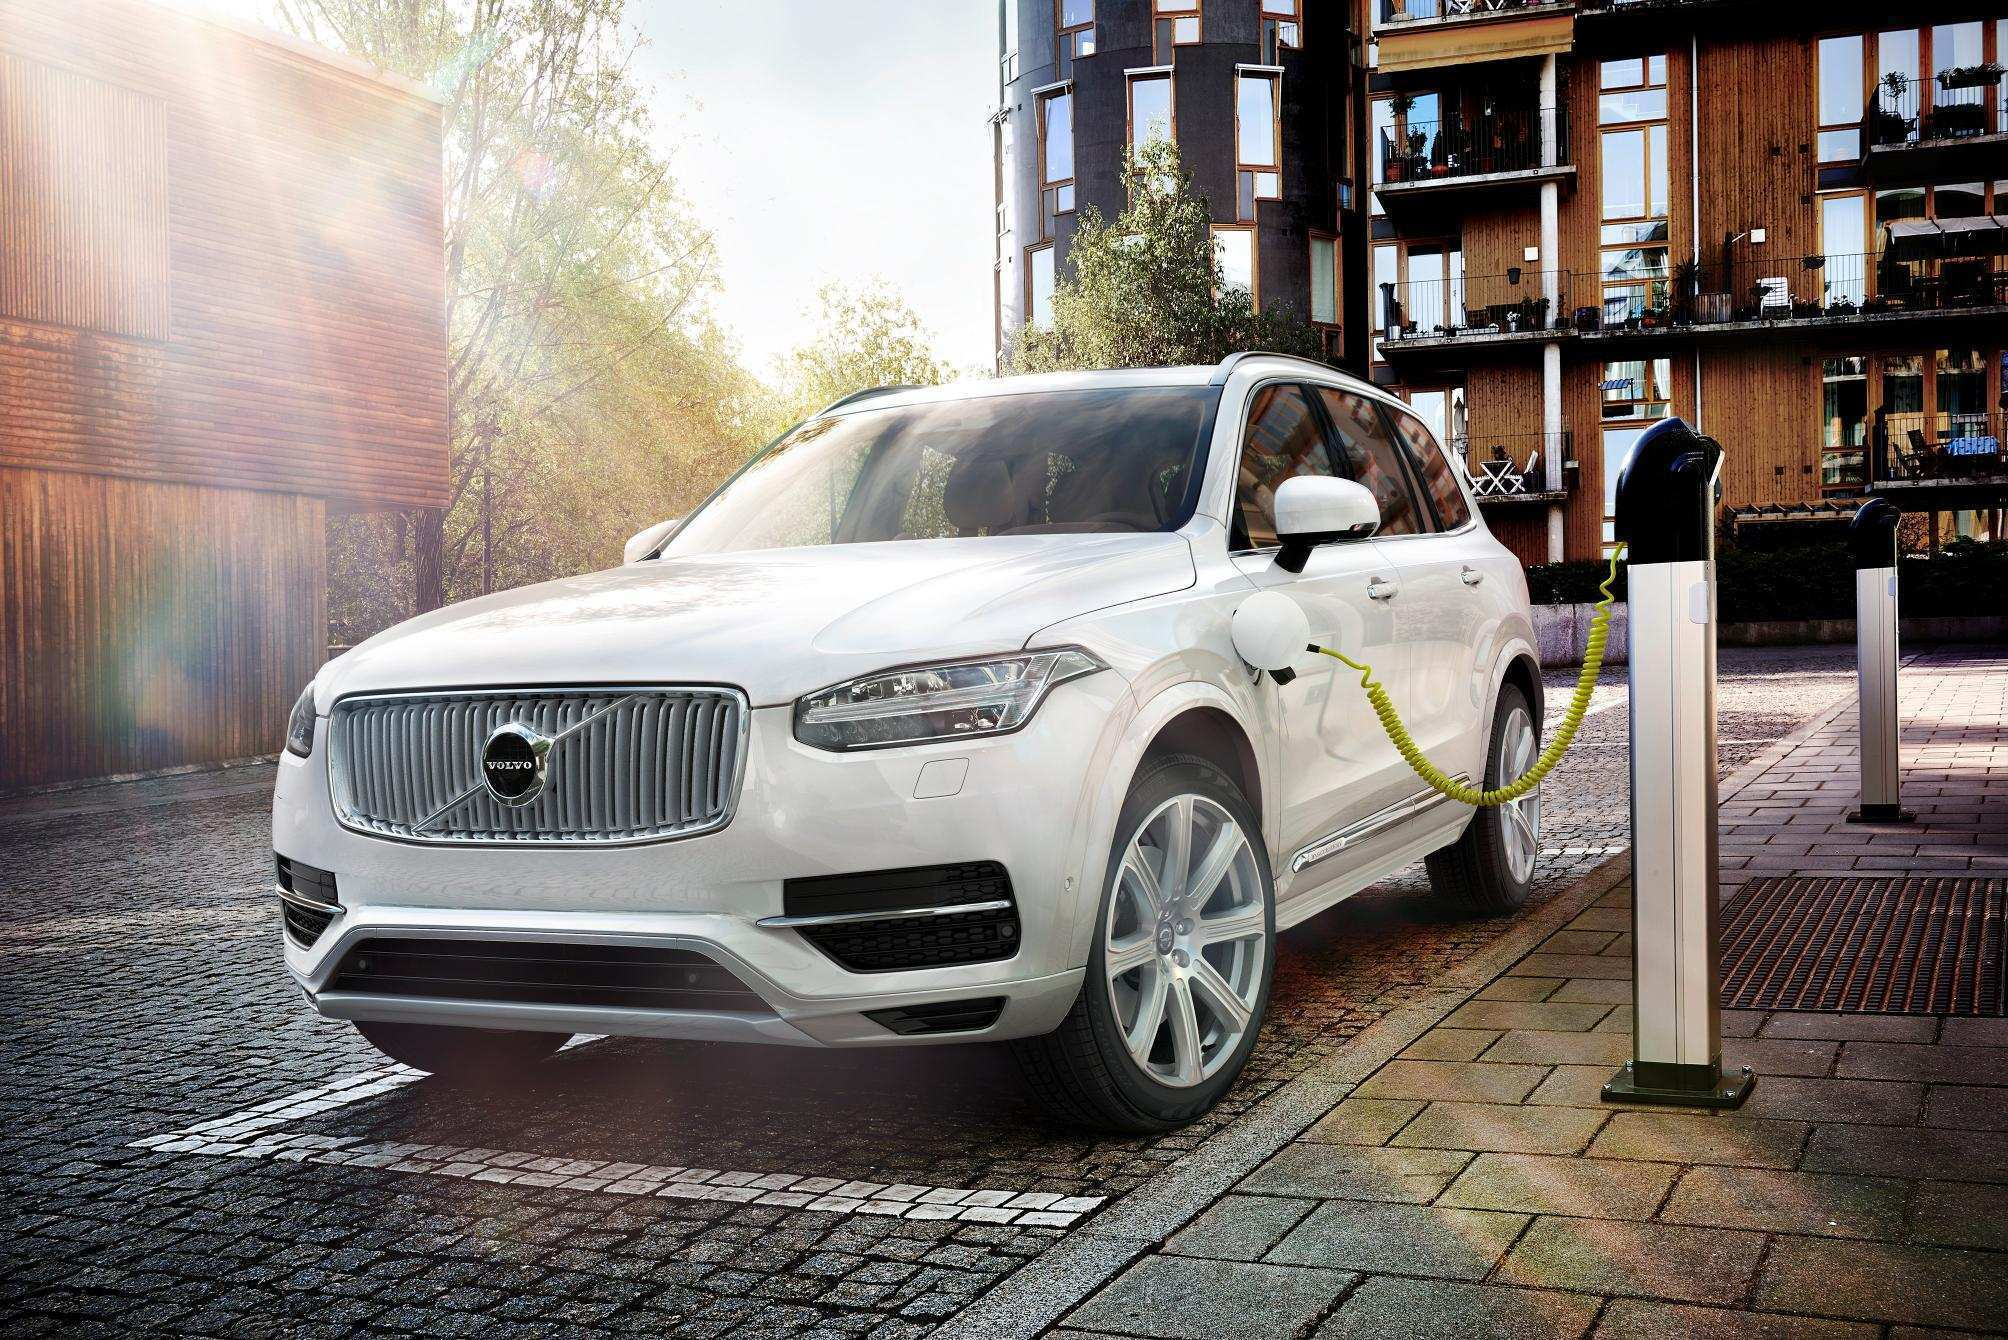 73 New Volvo 2020 Fuel Consumption Pricing for Volvo 2020 Fuel Consumption